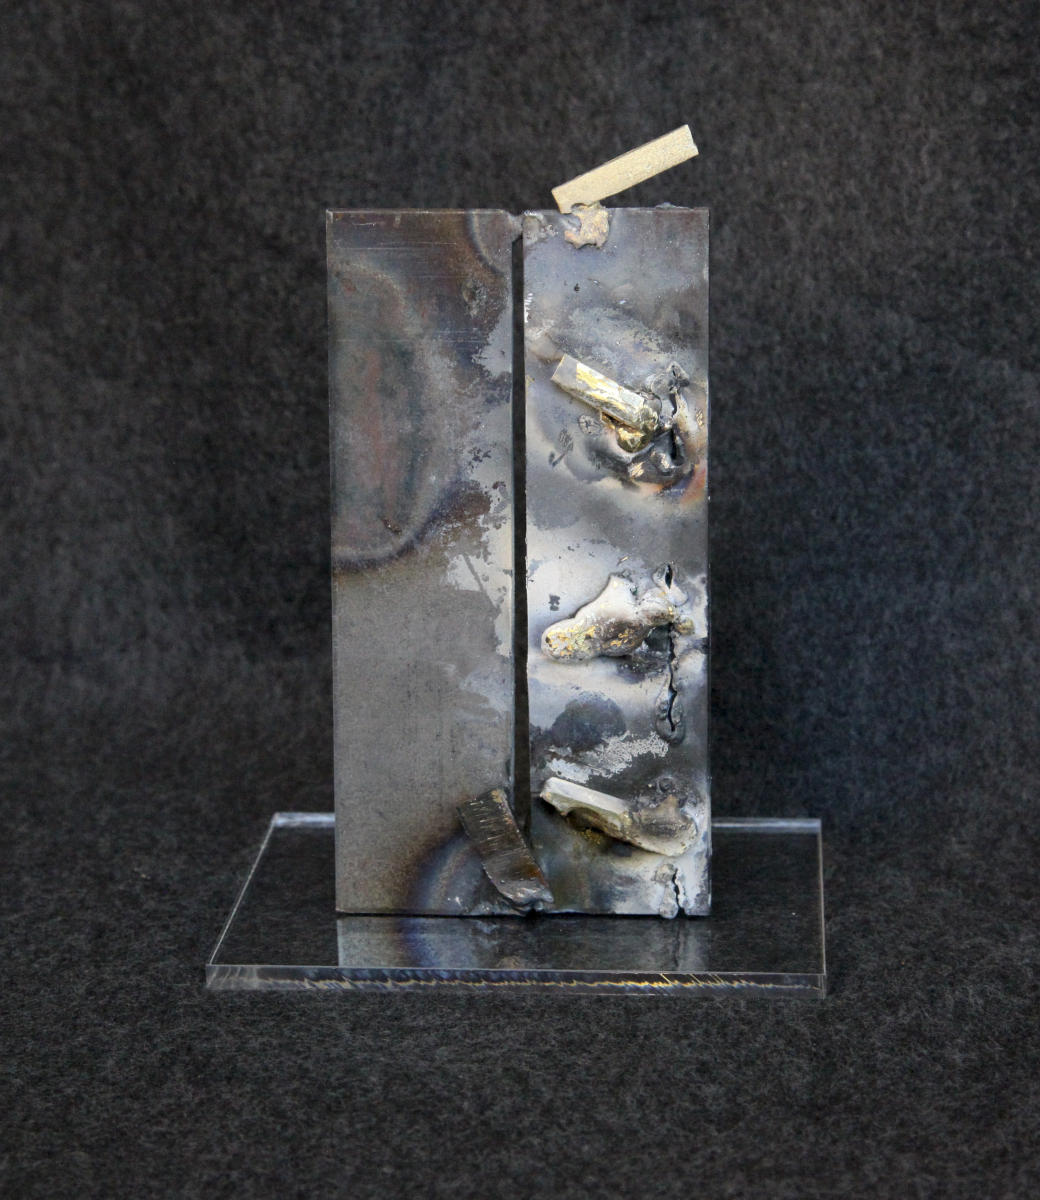 'ALCHEMY' - 2013